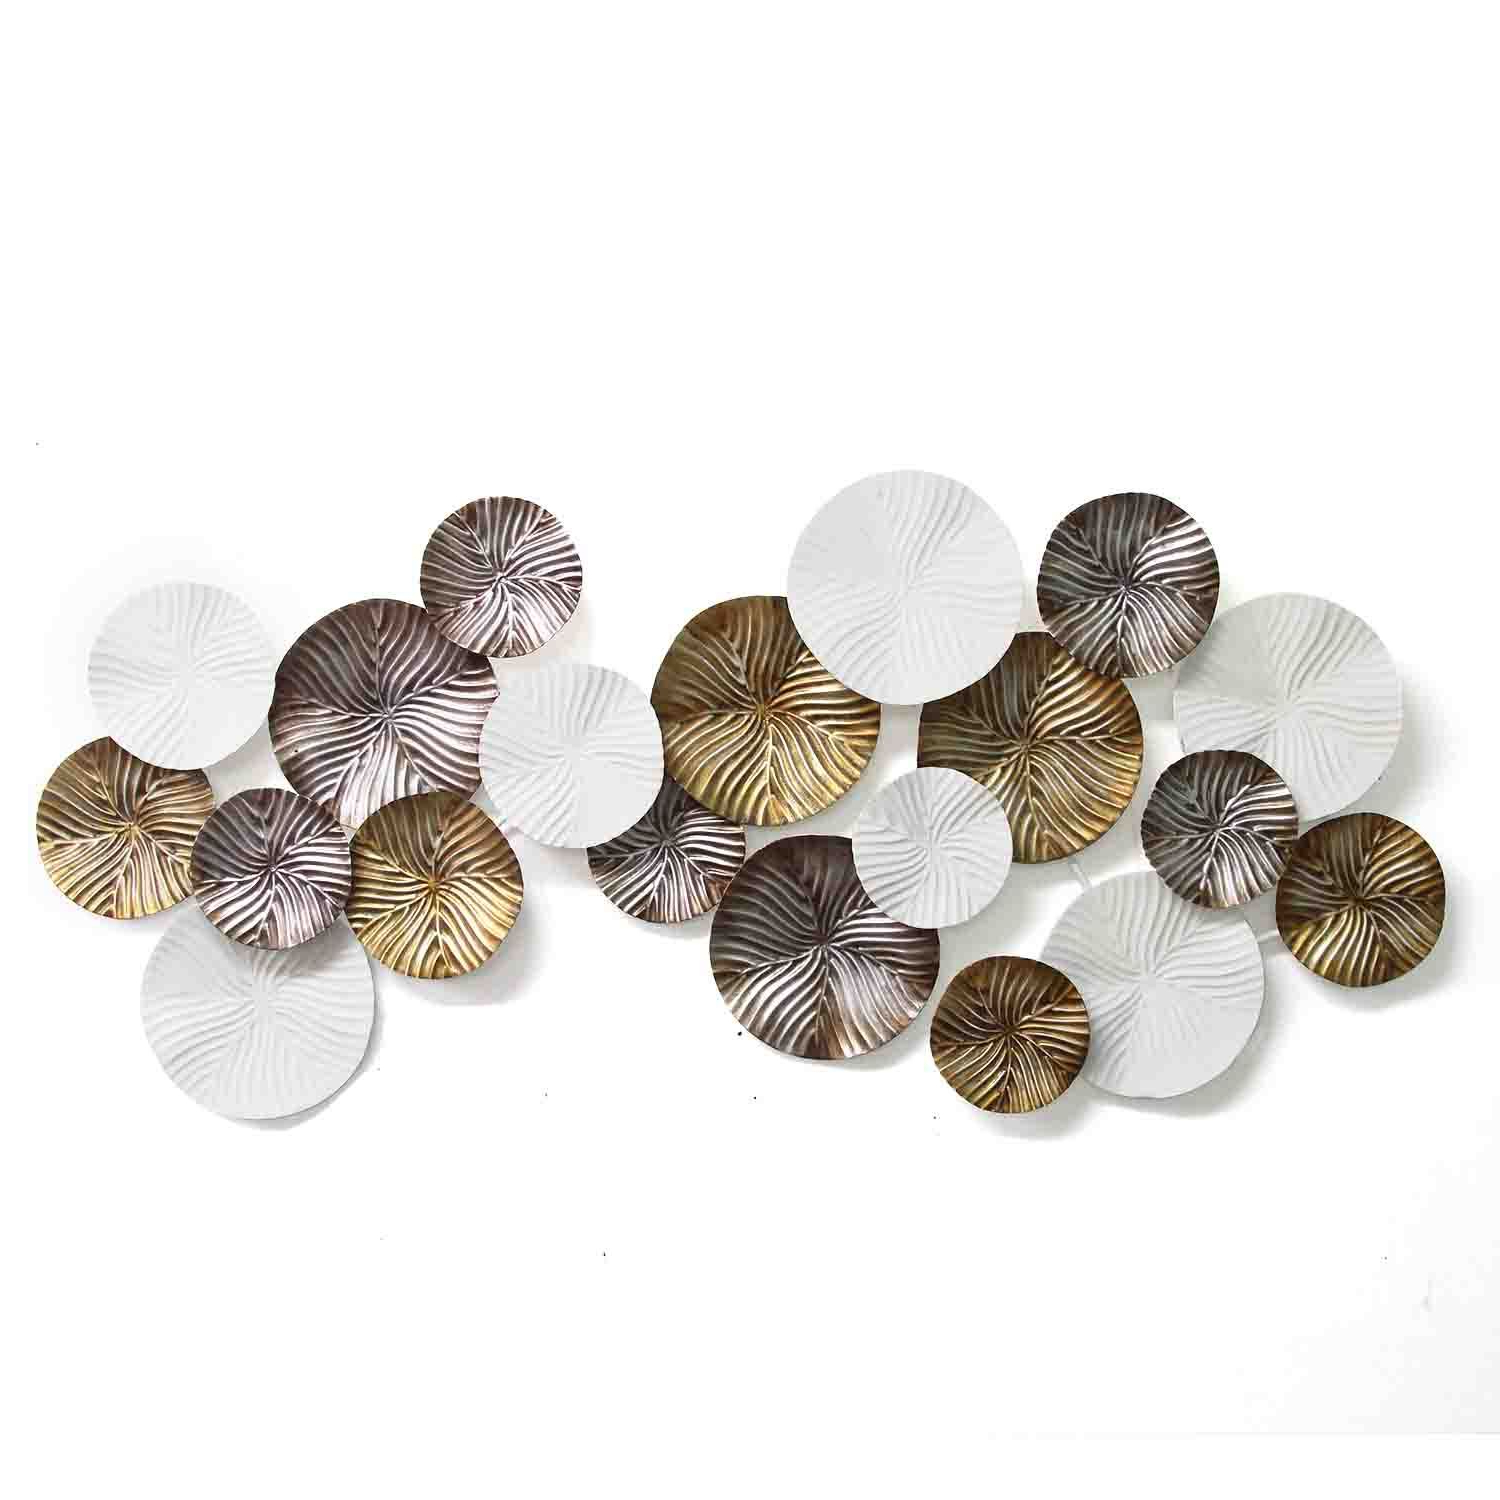 Well Known Stratton Home Decor Claudette Modern Wall Decor – Walmart Within Rings Wall Décor By Stratton Home Decor (View 11 of 20)